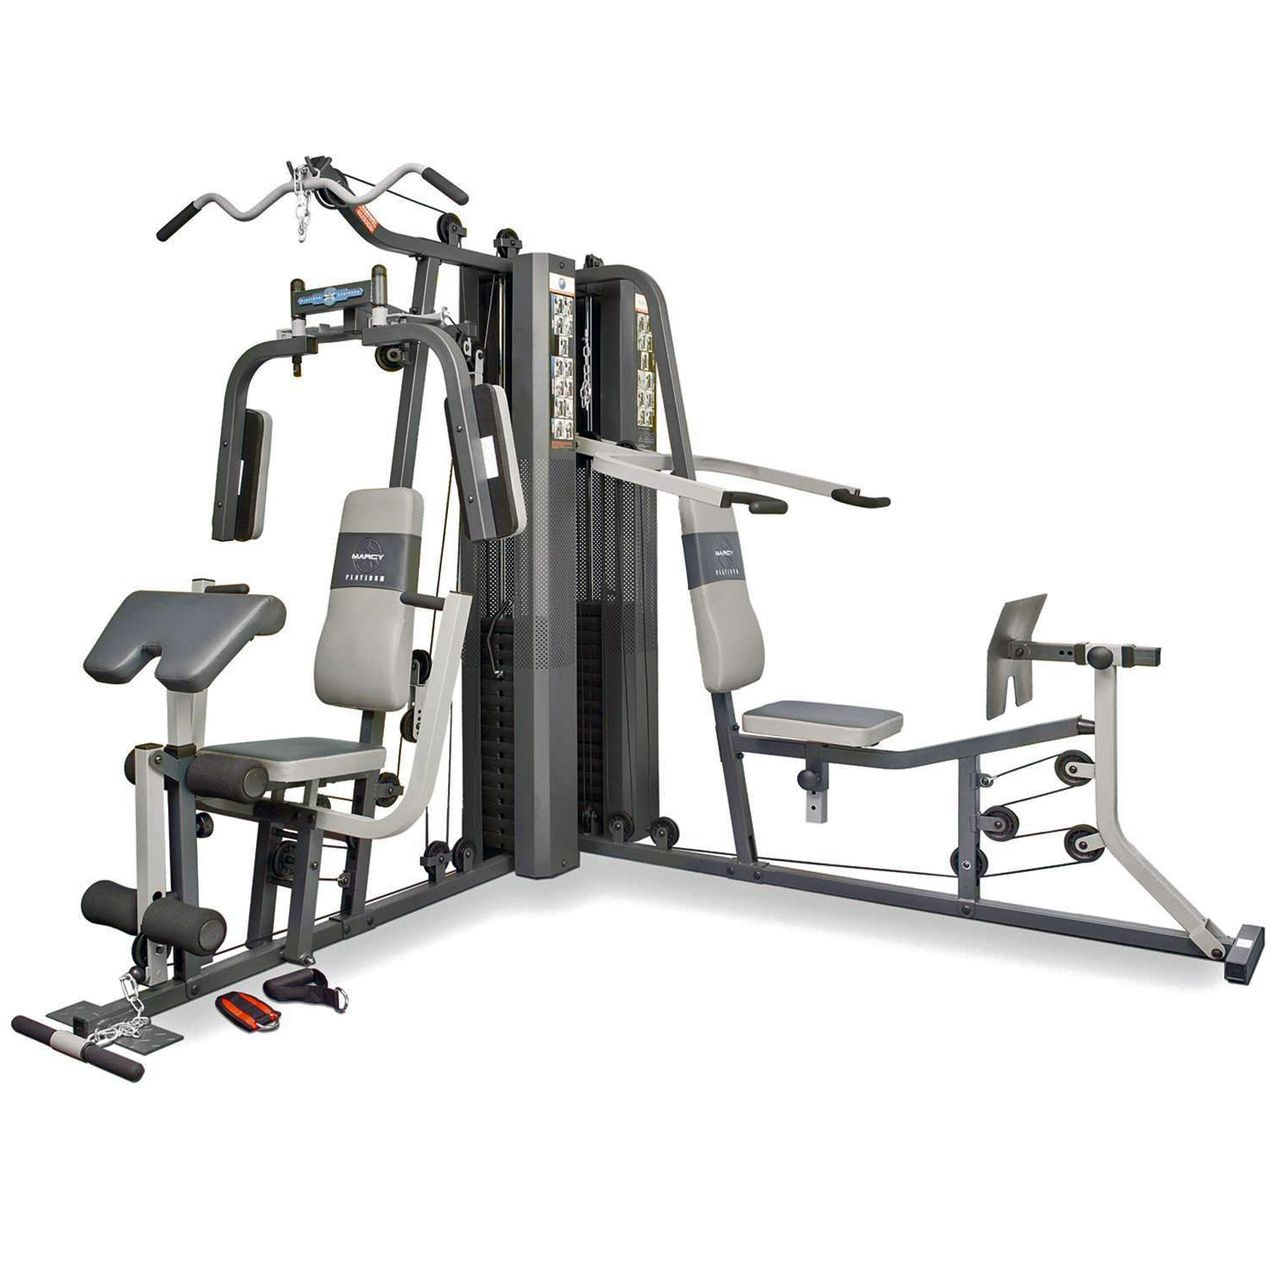 The Marcy GS99 Dual Stack Home Gym at £899.00. At home